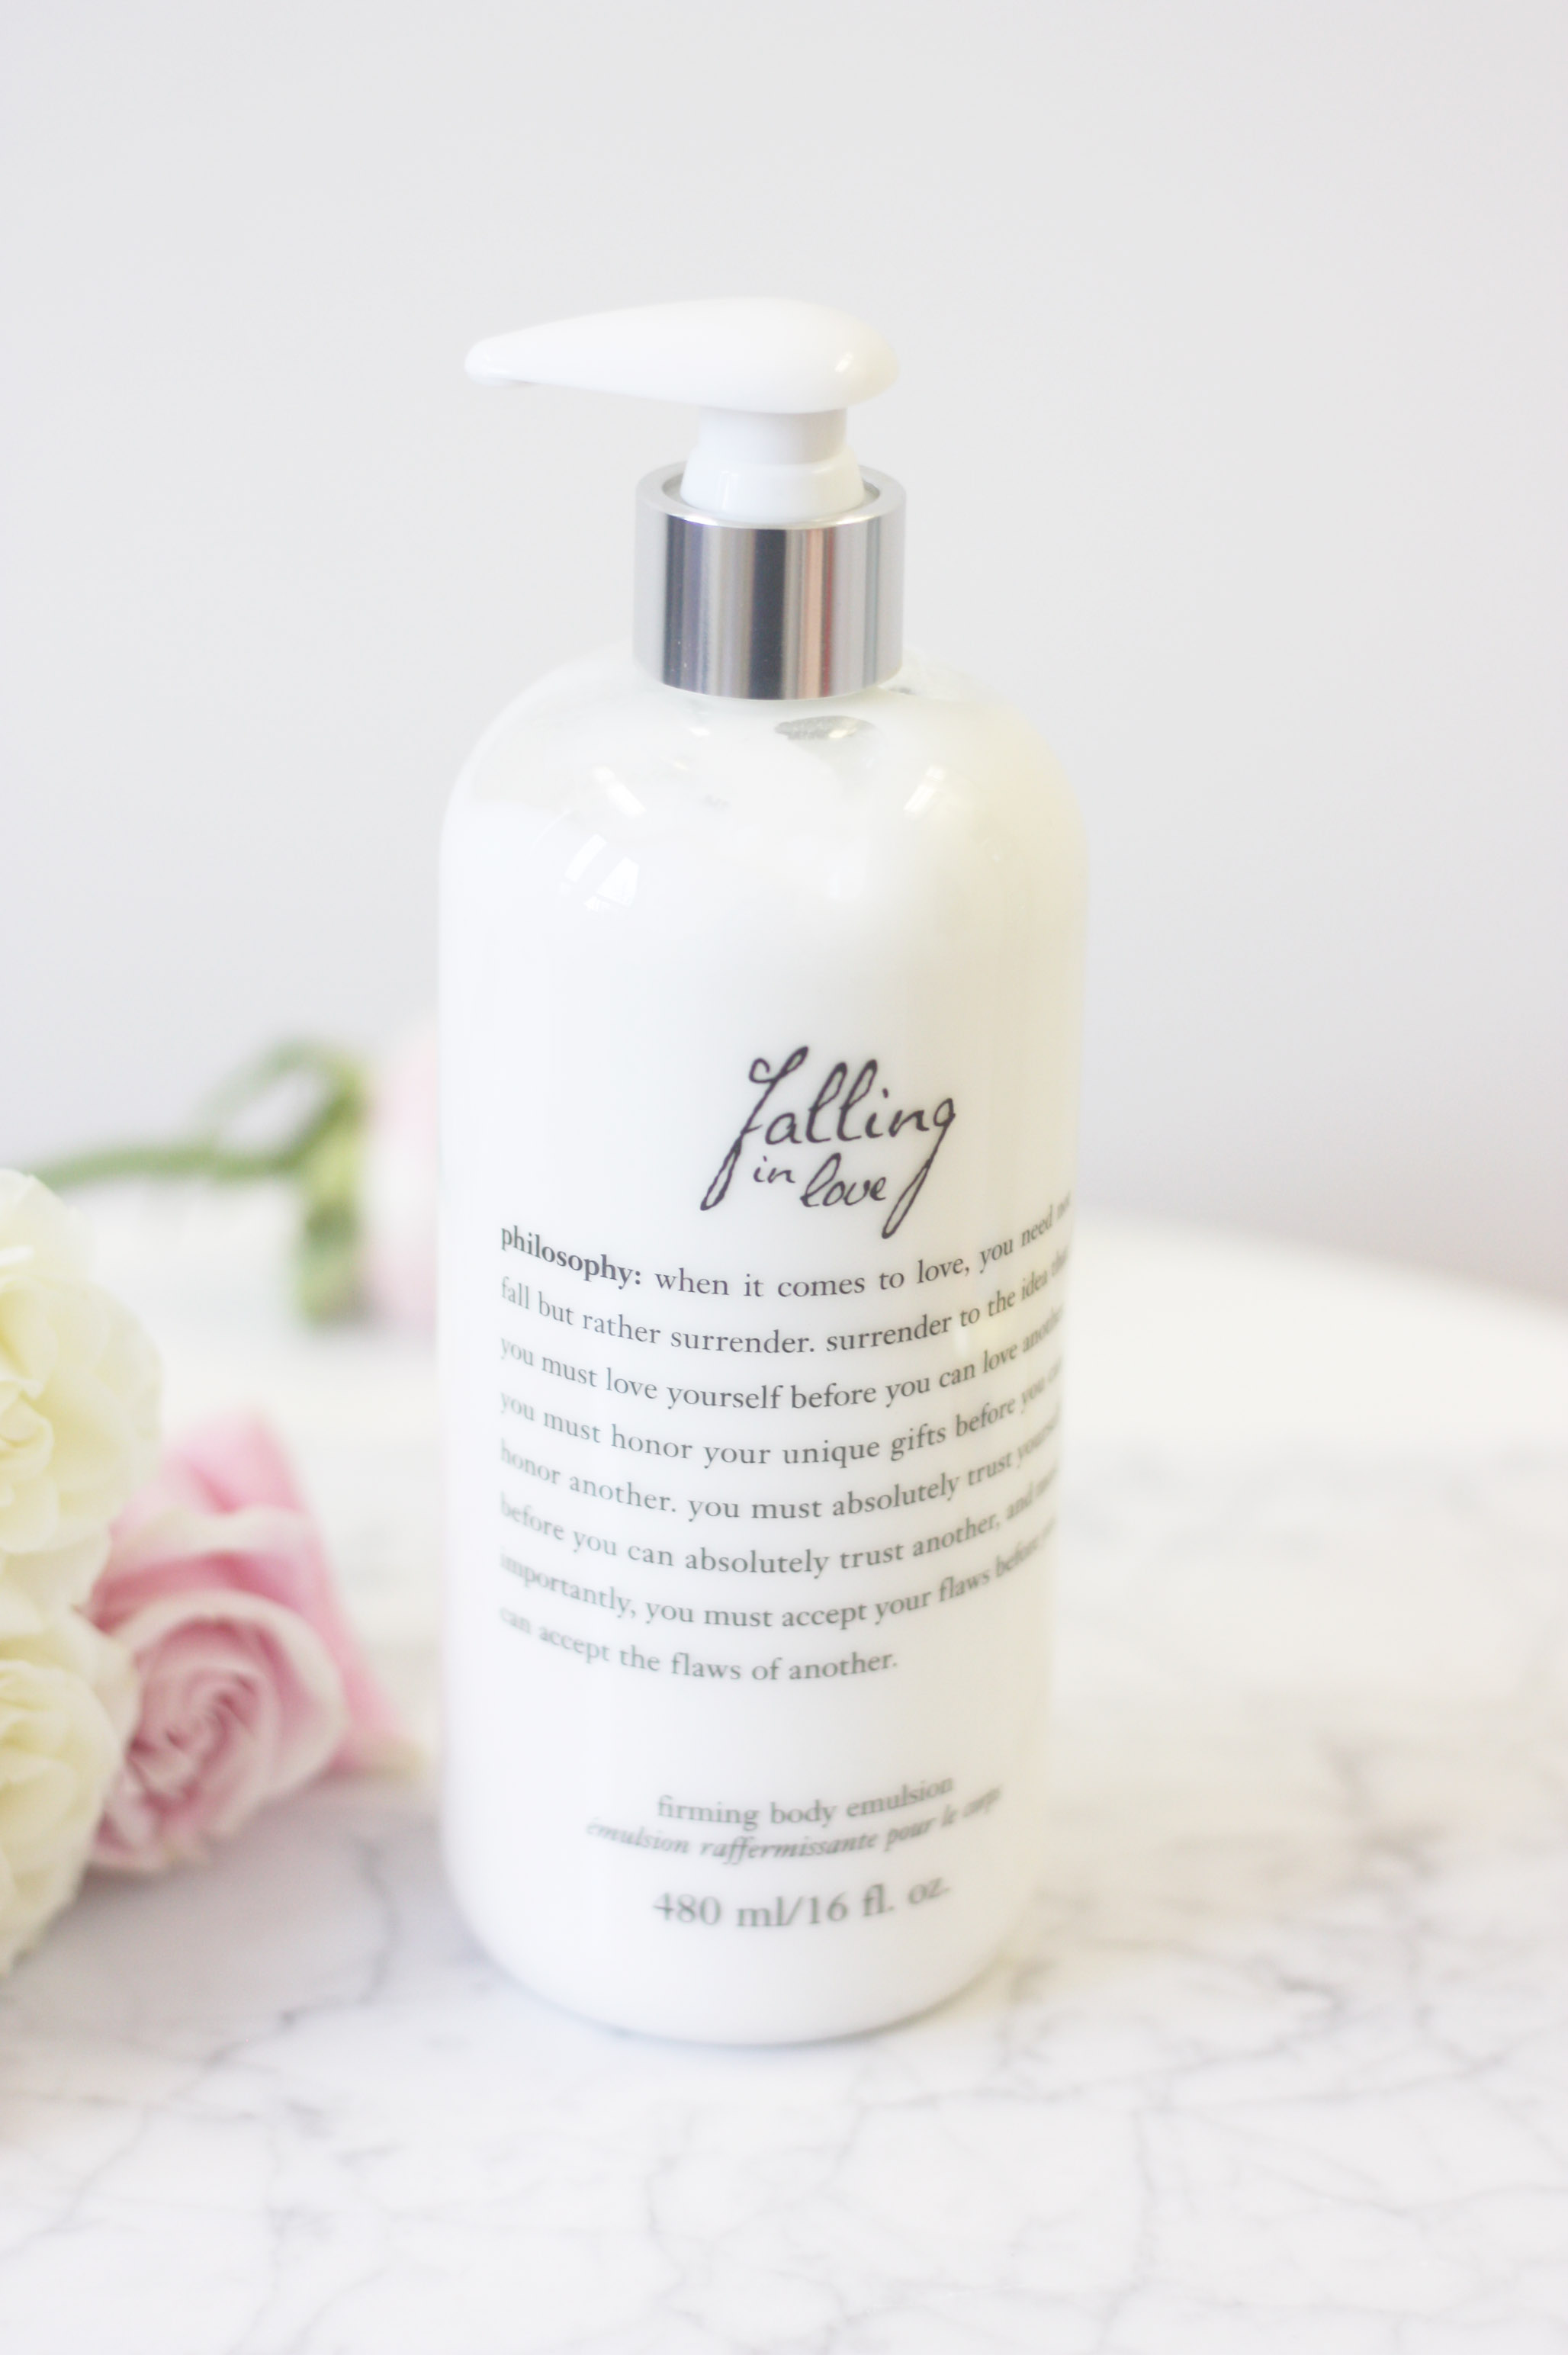 Philosophy firming lotion